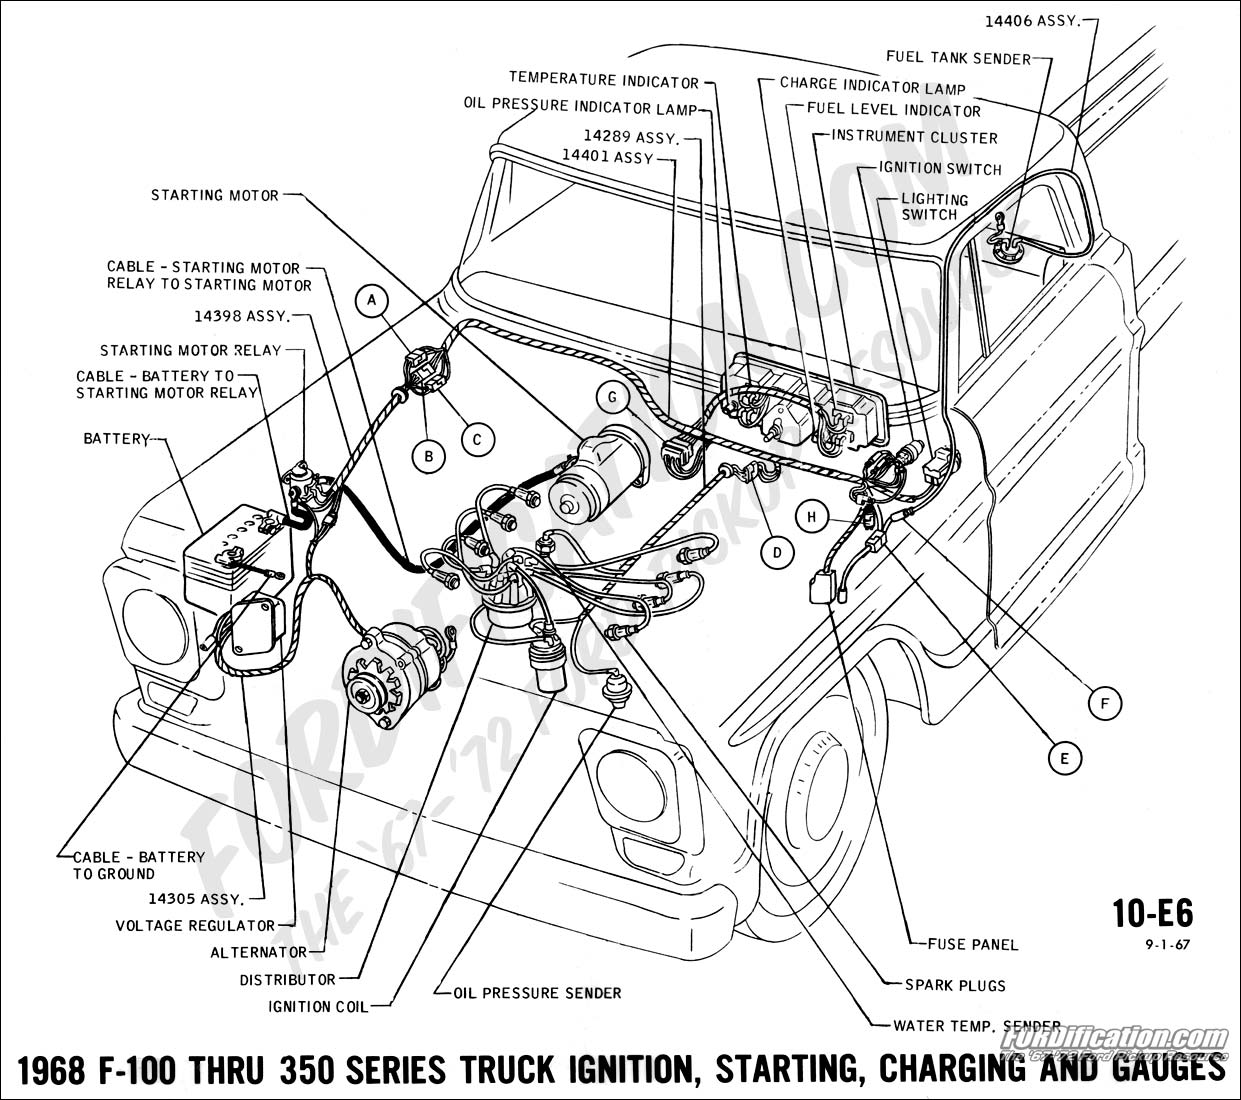 1968 Ford Truck Turn Signal Wiring Diagram Another Blog About 1970 Chevelle Switch Technical Drawings And Schematics Section H F100